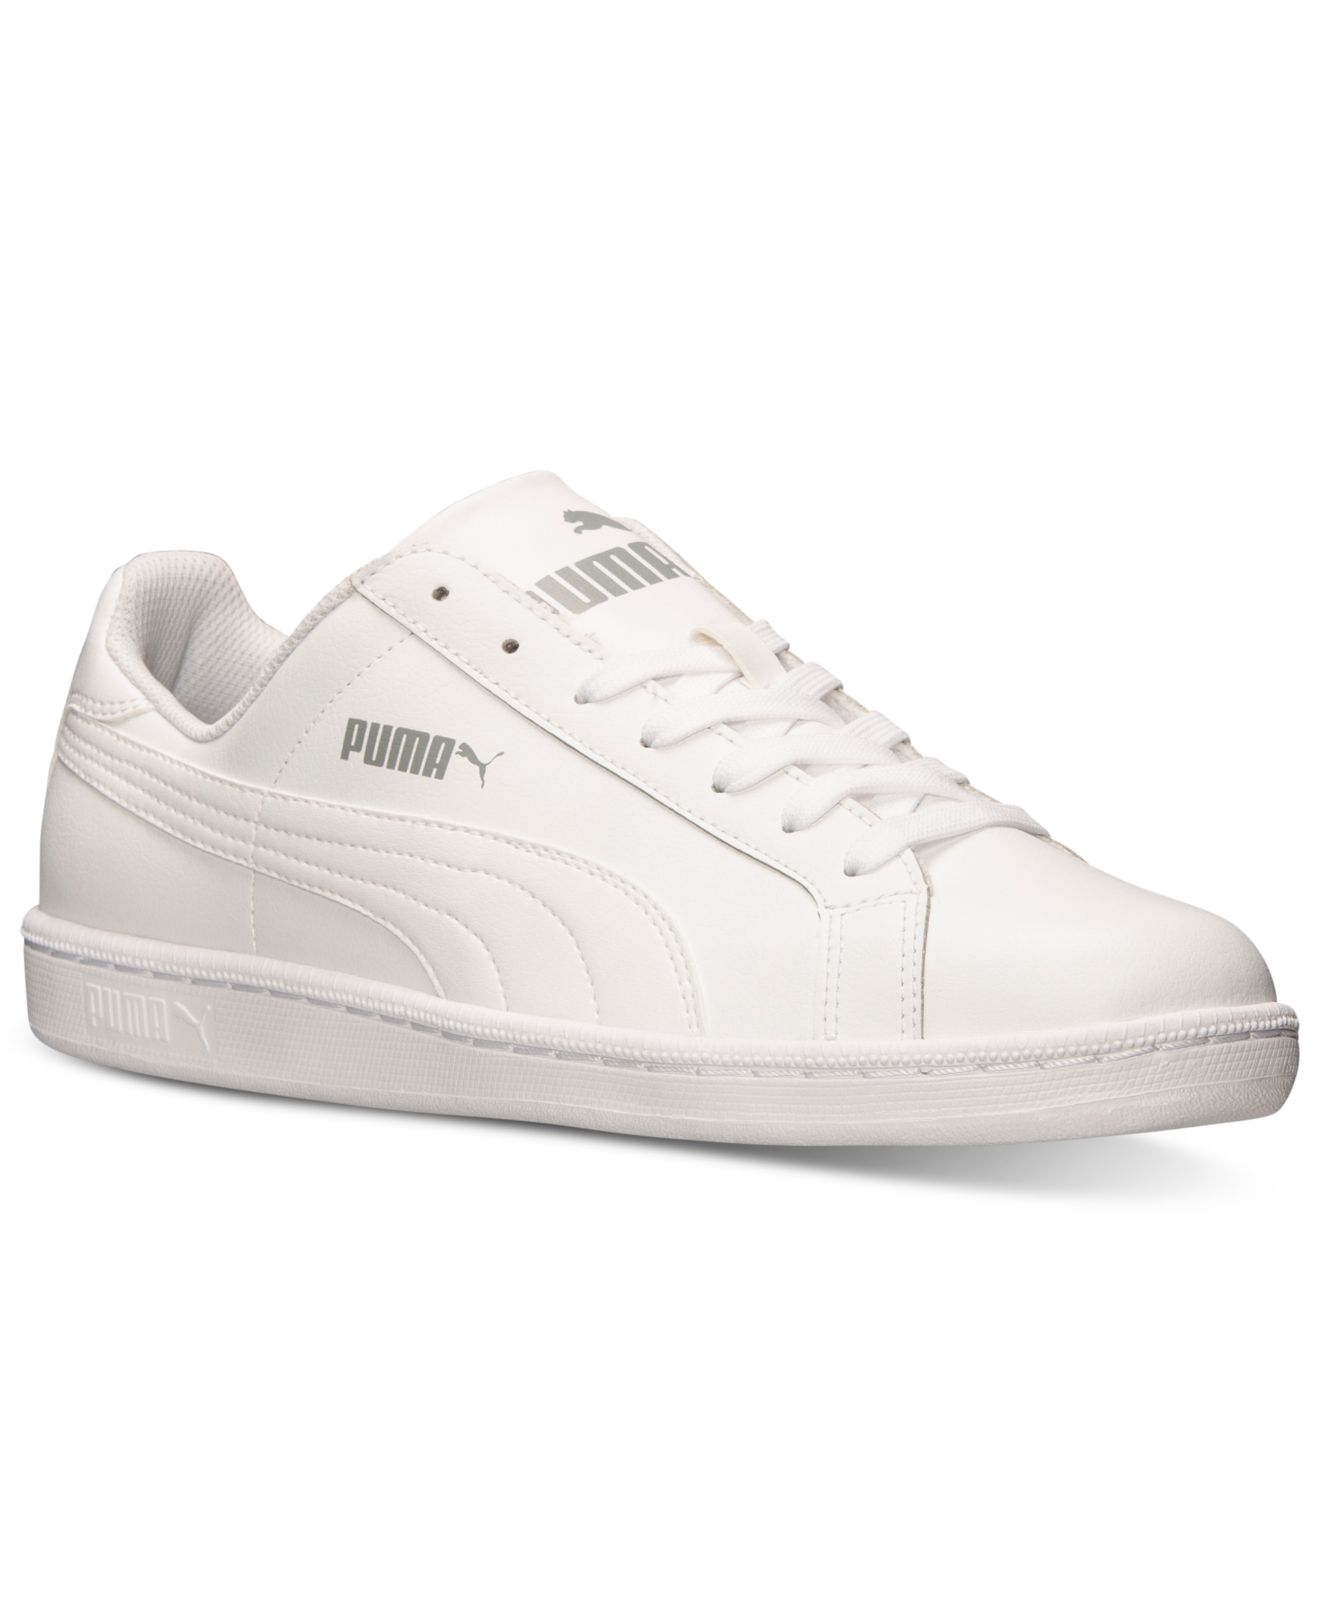 puma men 39 s smash leather casual sneakers from finish line in white for men lyst. Black Bedroom Furniture Sets. Home Design Ideas